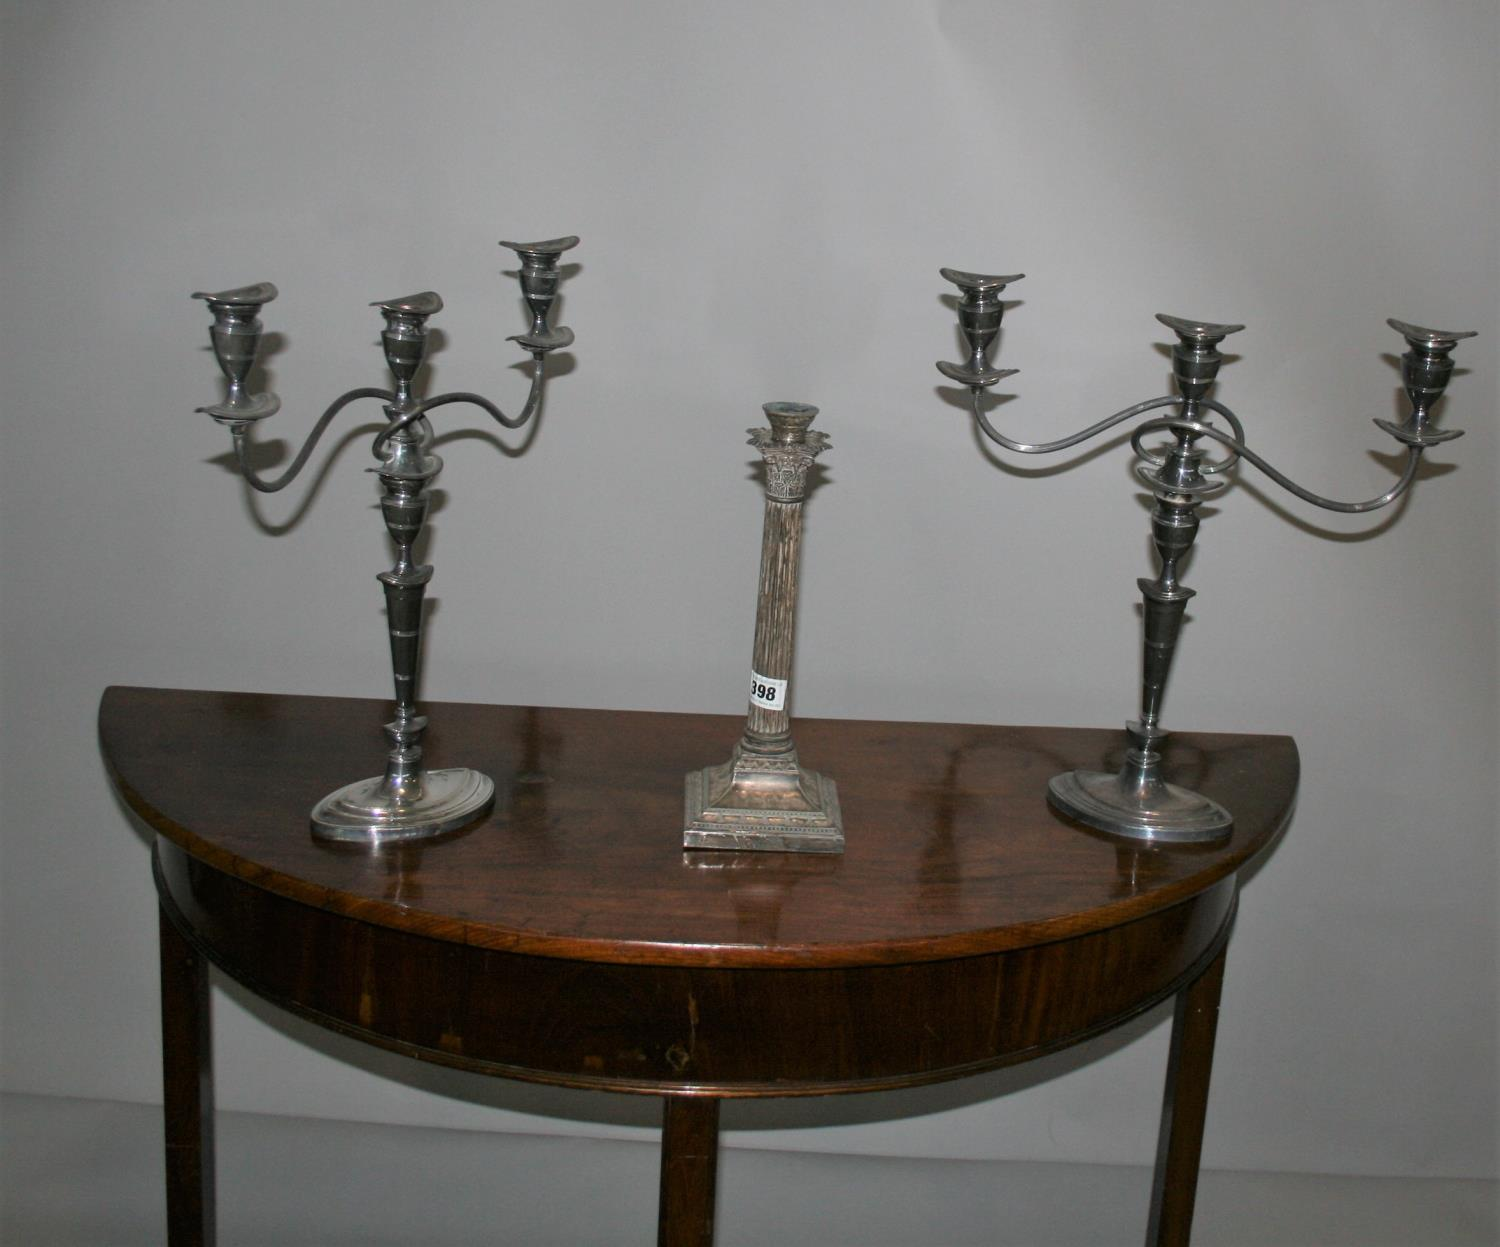 West & Son, Dublin, silver plated lamp base and a pair of candle sticks.